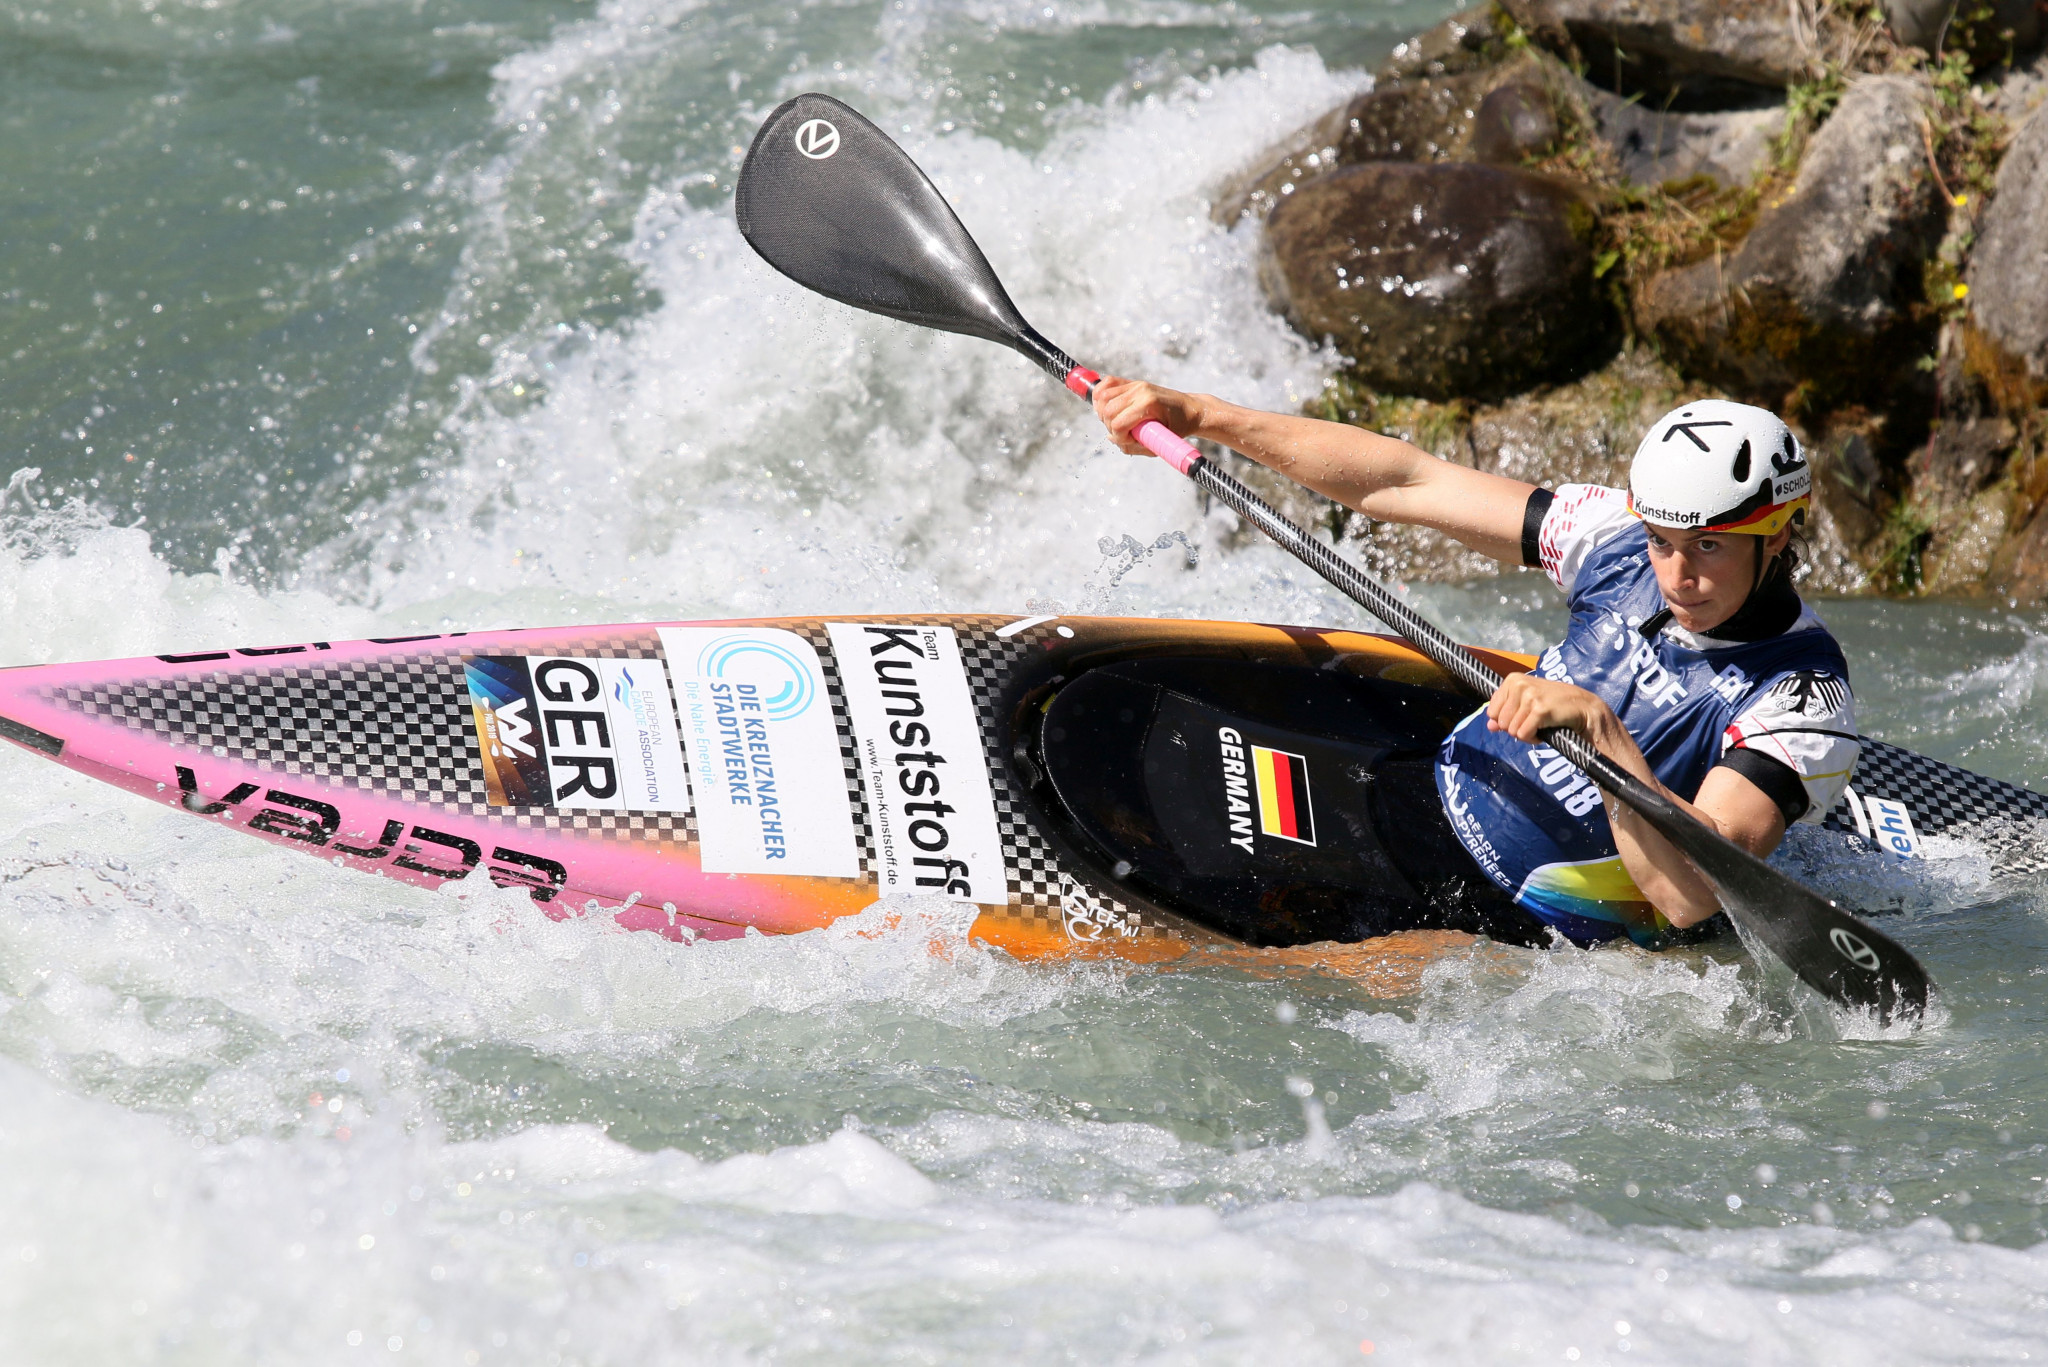 European champion Ricarda Funk from Germany produced the best run to win the women's kayak heats on the opening day of the ECA European Canoe Slalom Championships in Pau ©ECA